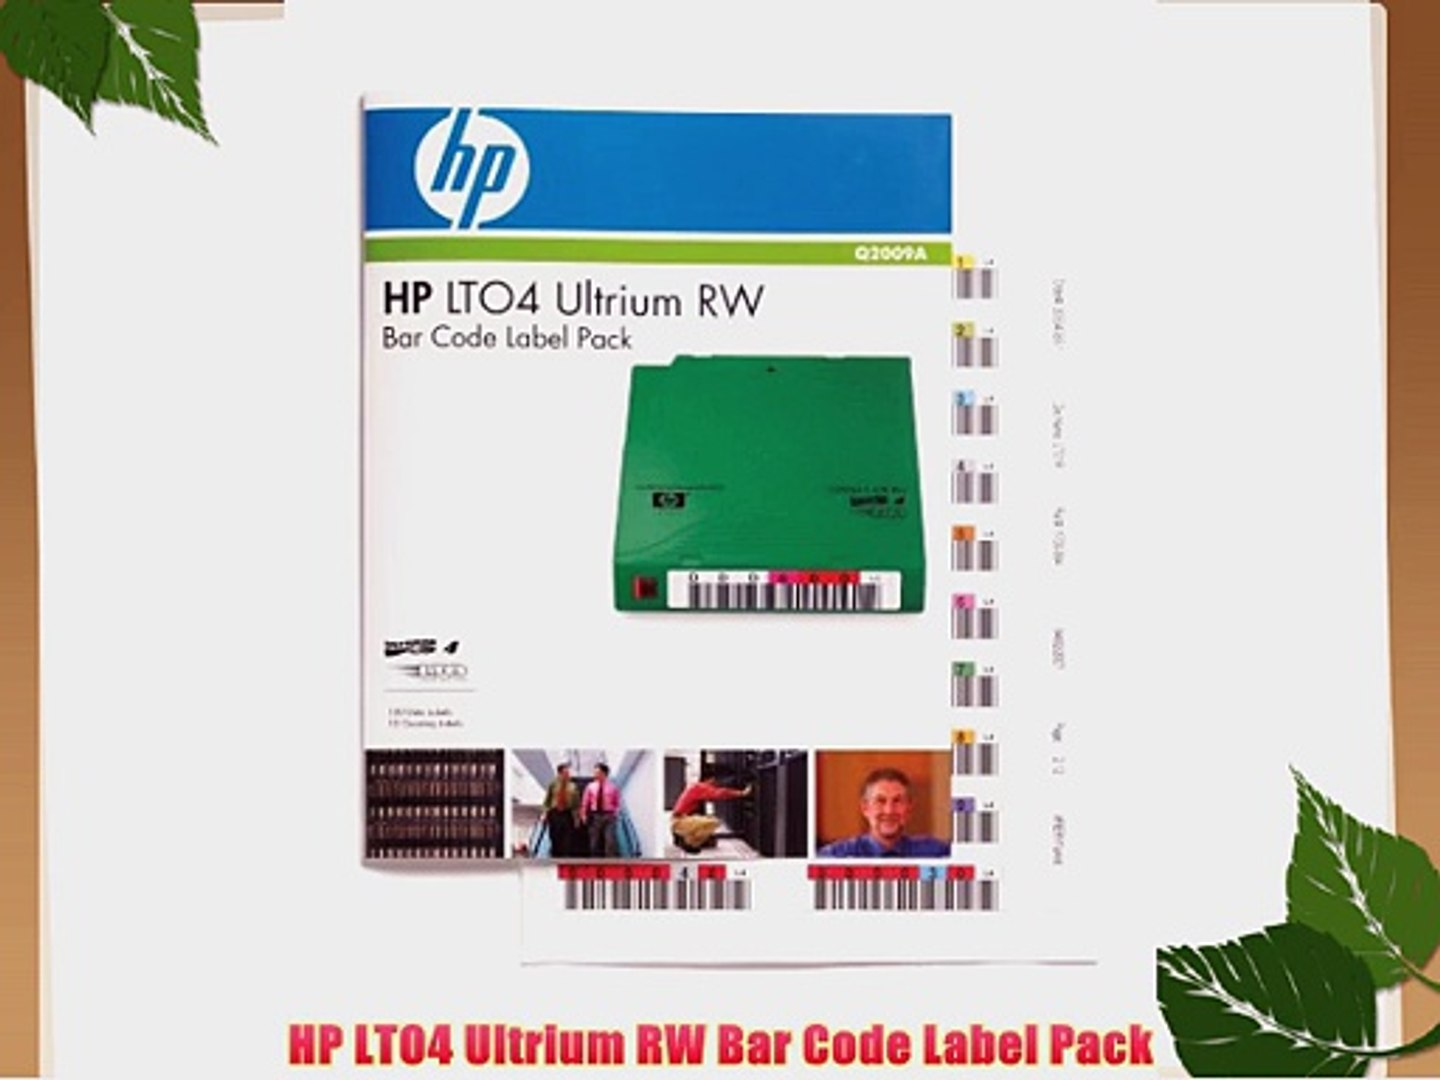 HPE LTO Ultrium 6 RW Bar Code Label Pack